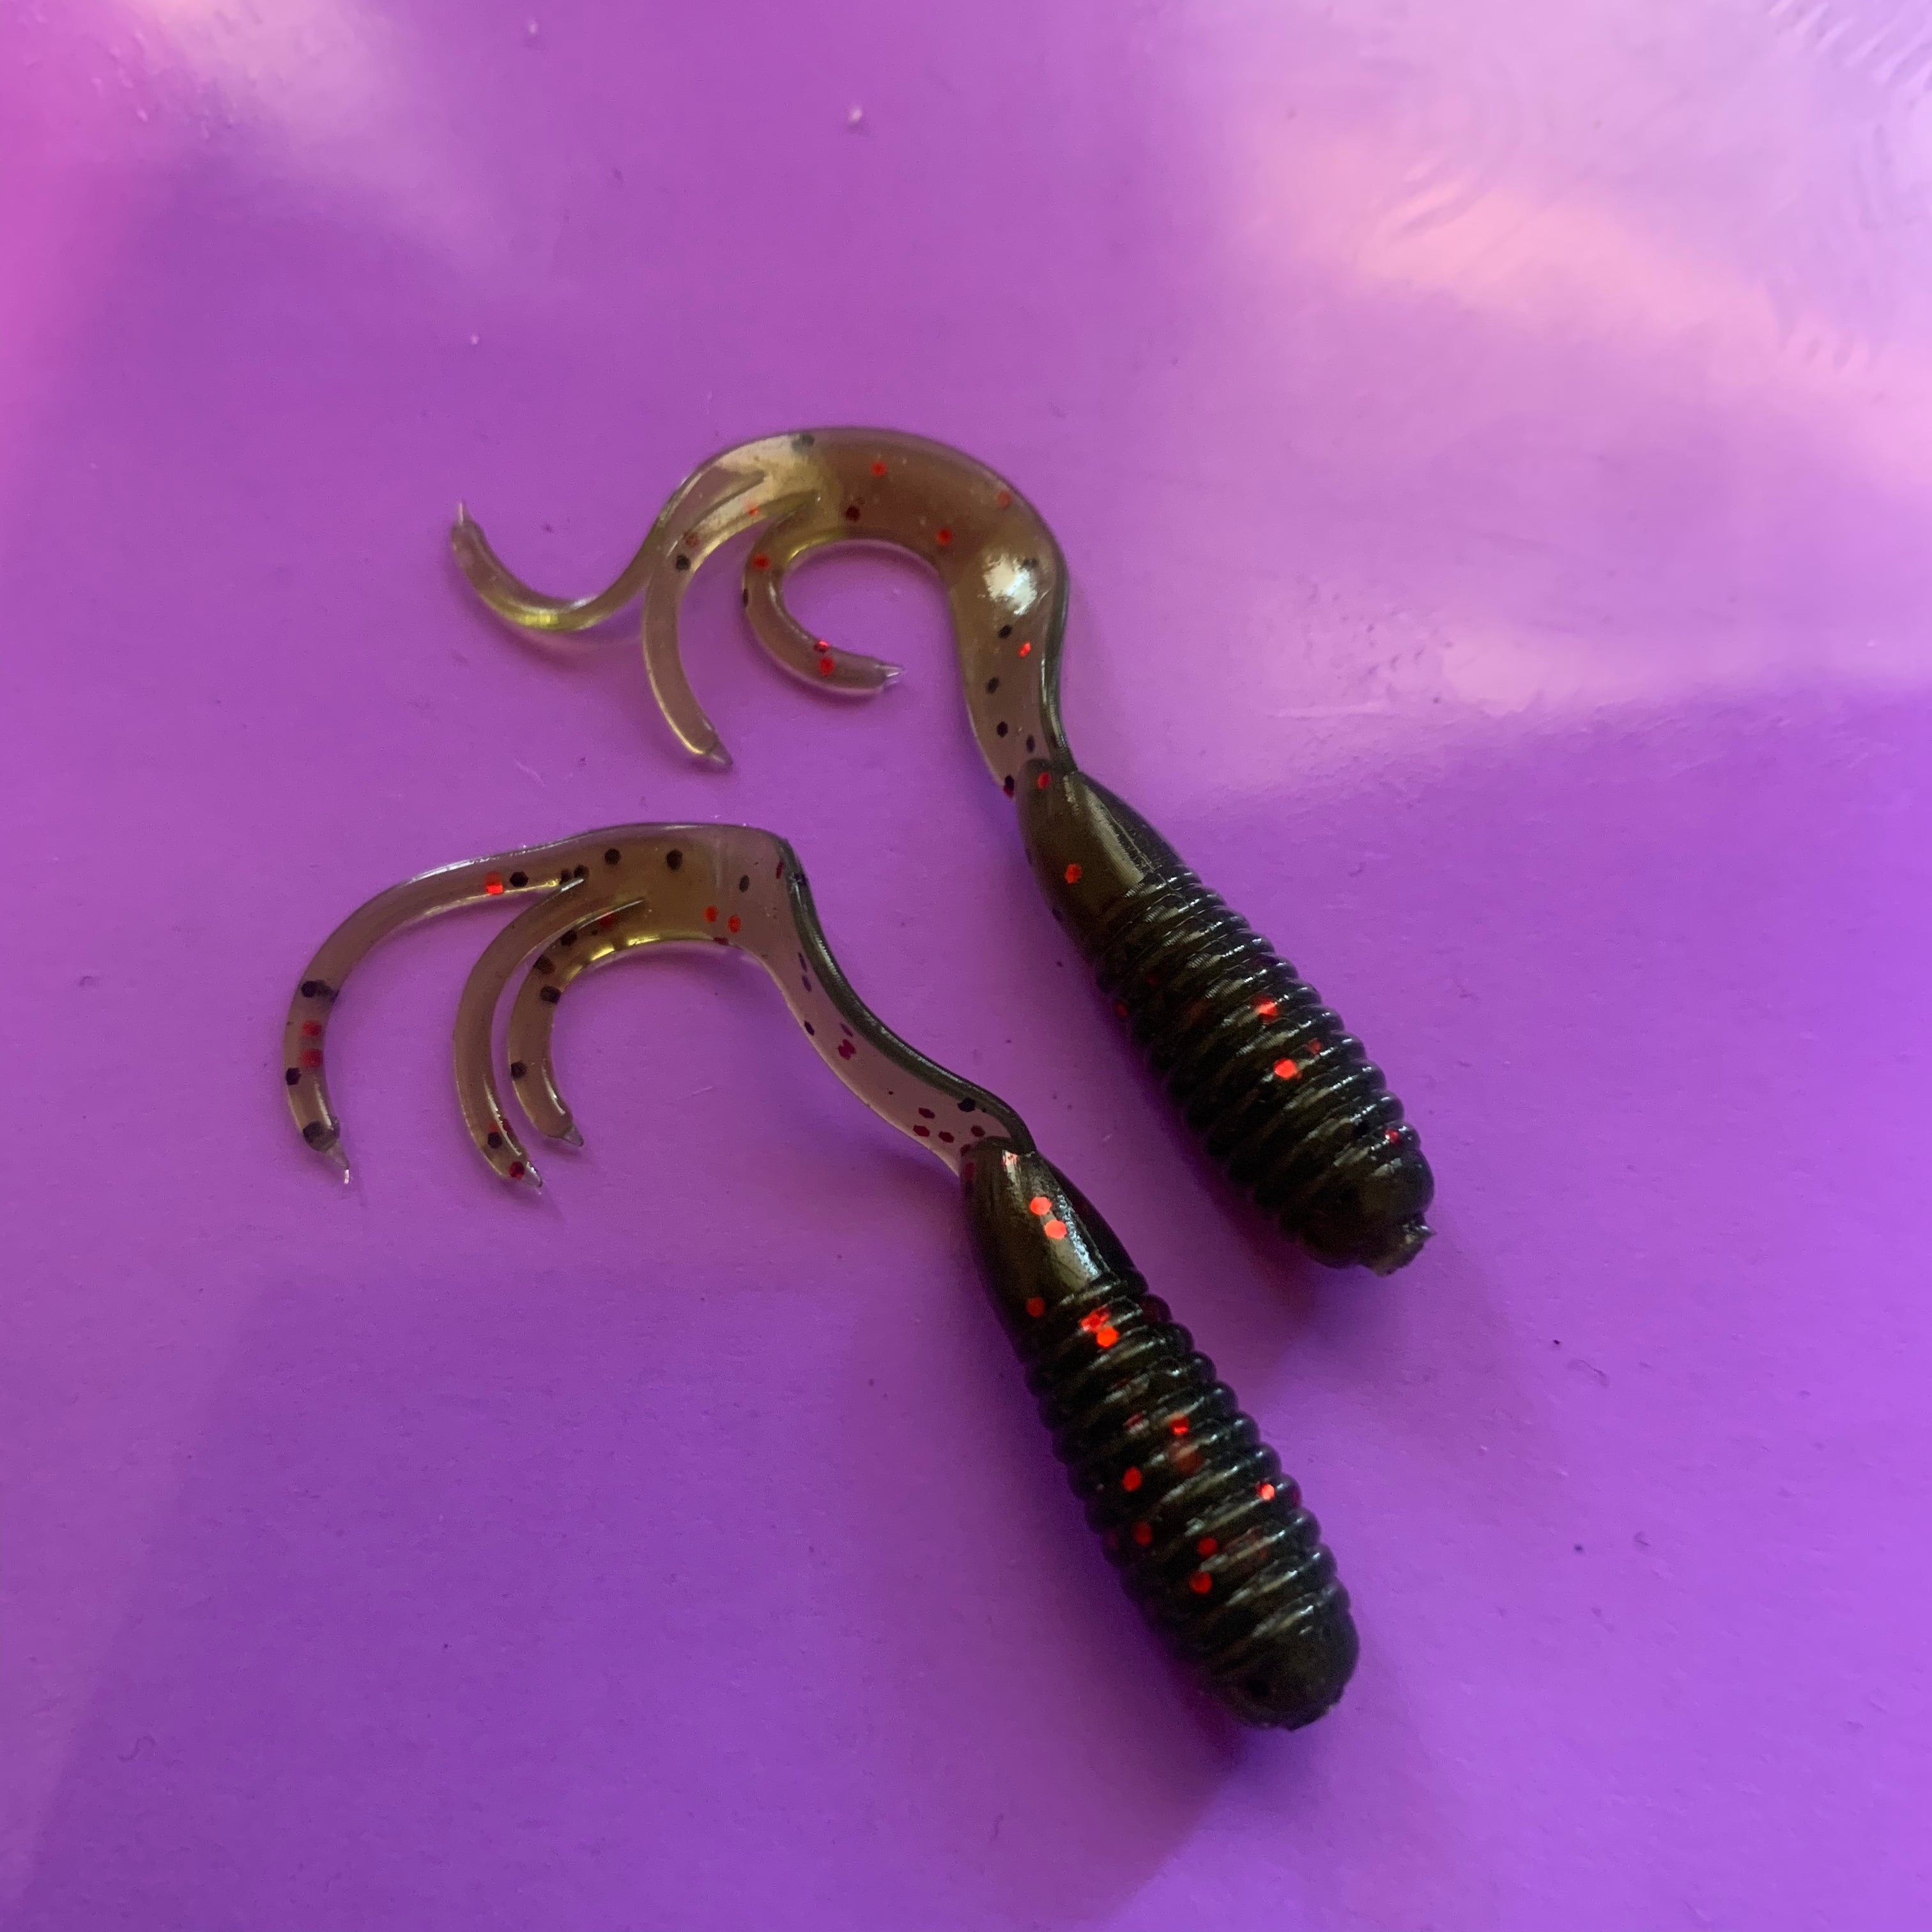 Curly Tri-Tail 38mm Grubs